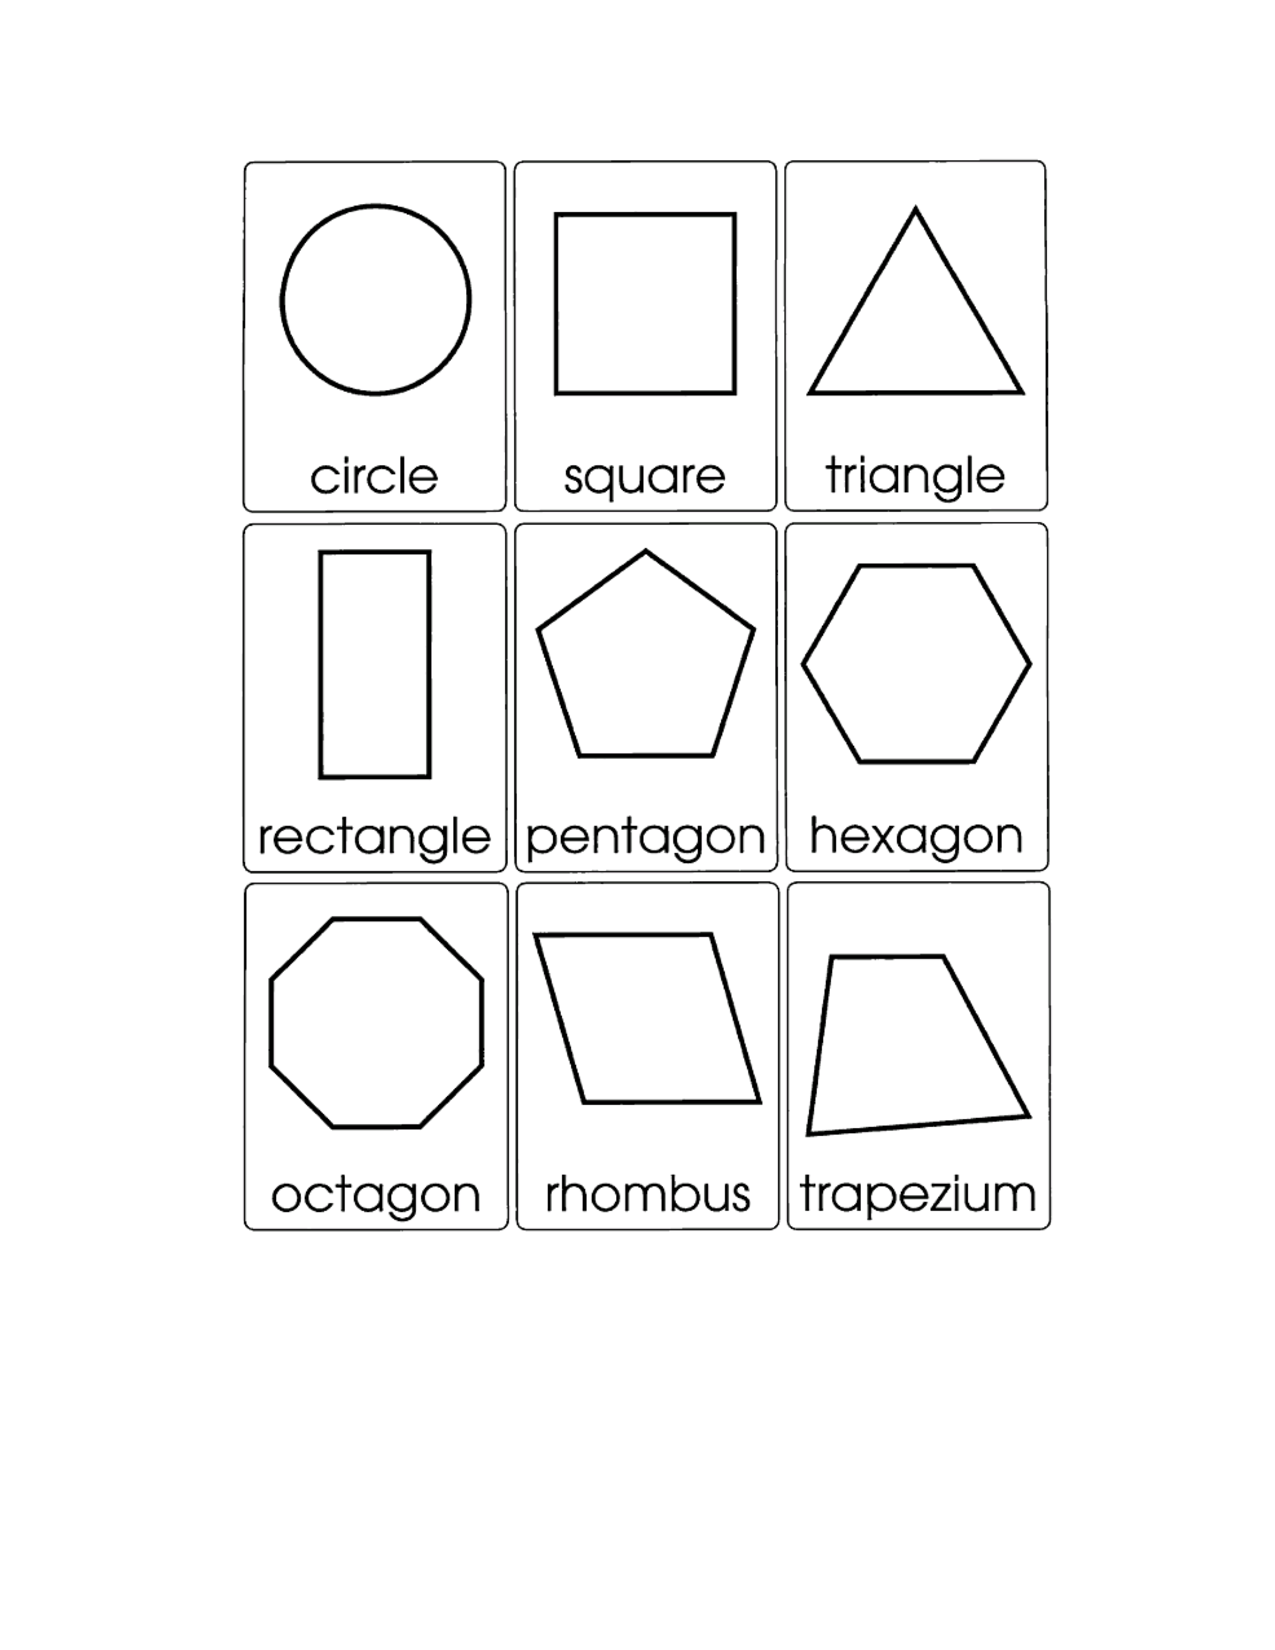 hight resolution of Identifying 2d And 3d Shapes Worksheet   Printable Worksheets and  Activities for Teachers